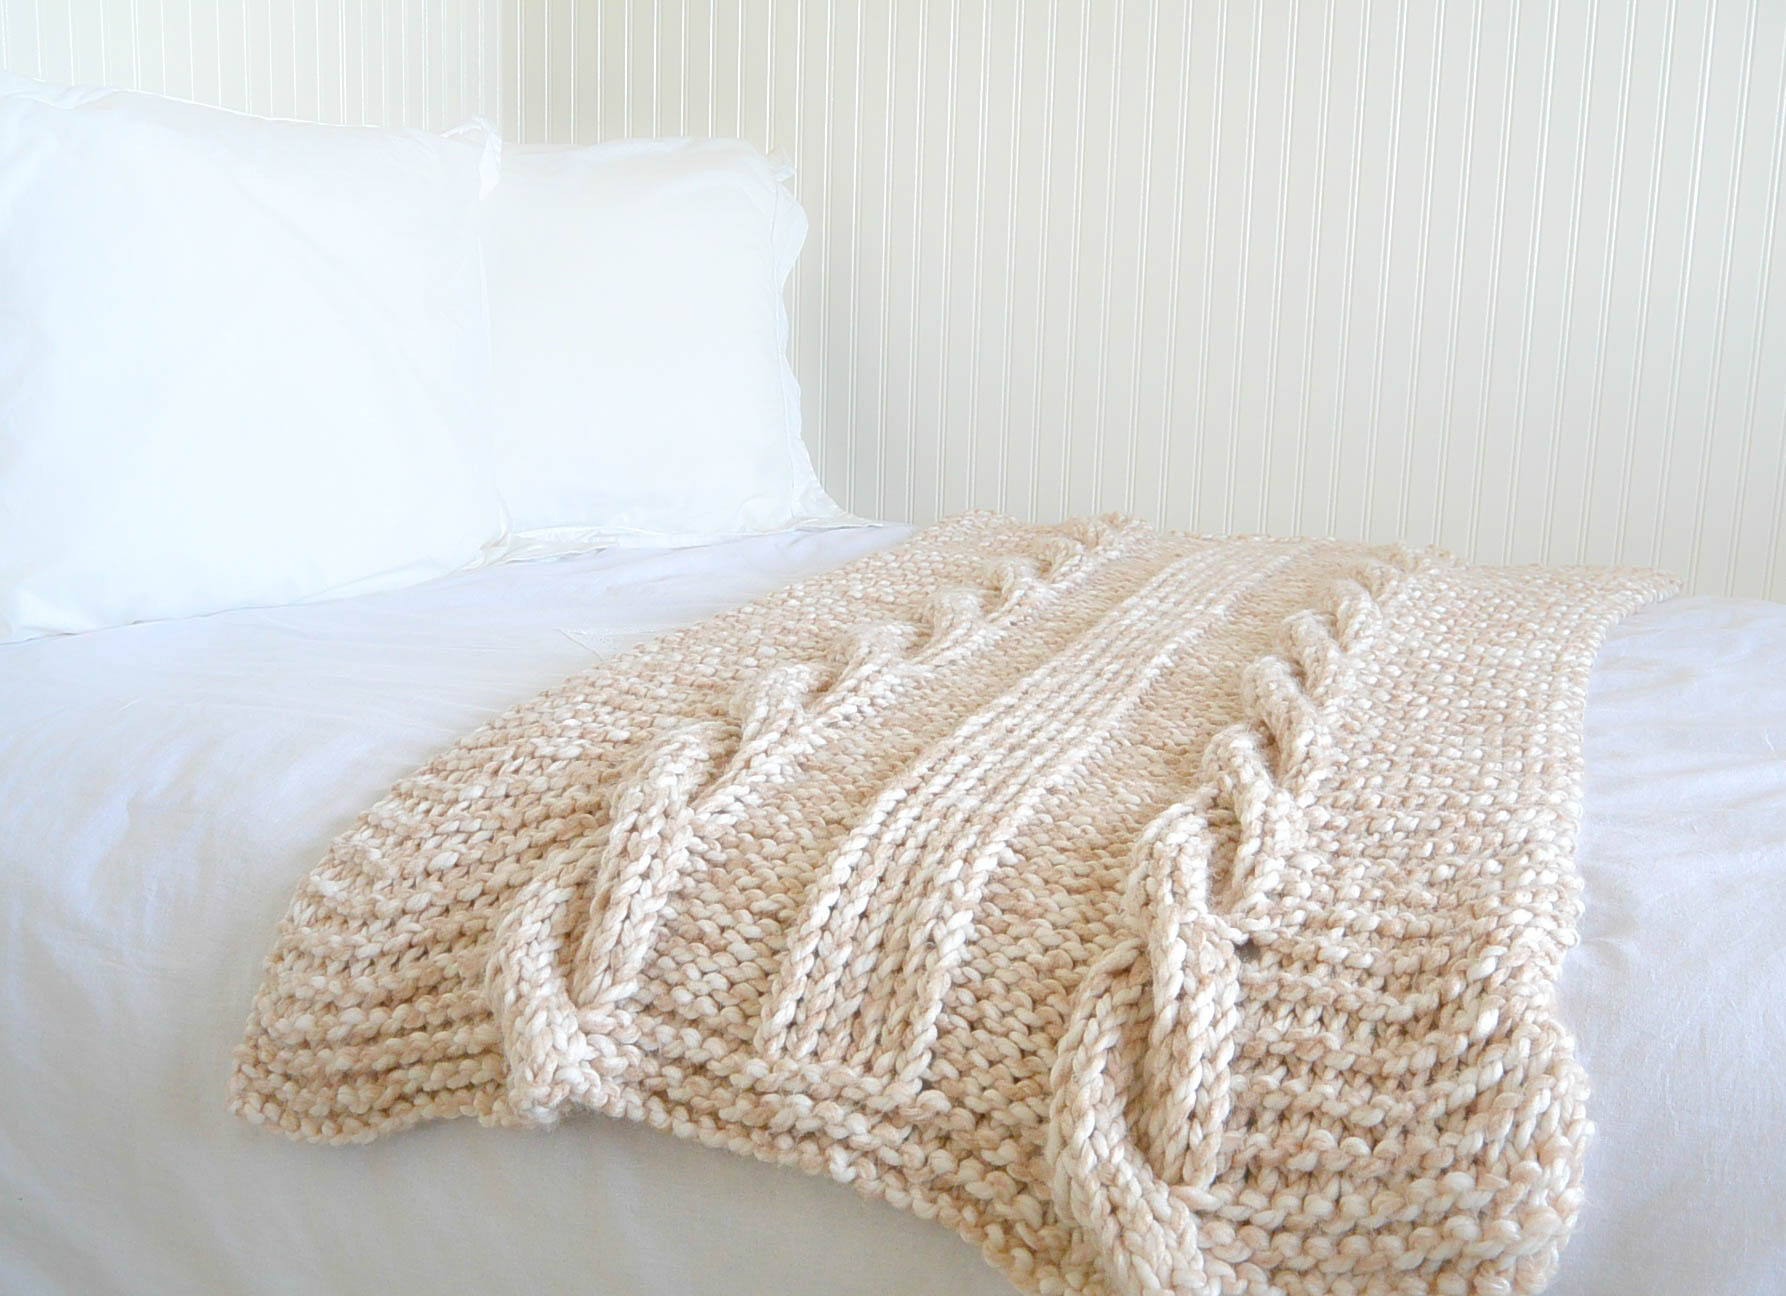 Chunky Baby Knitting Patterns Free : Endless Cables Chunky Knit Throw Pattern   Mama In A Stitch